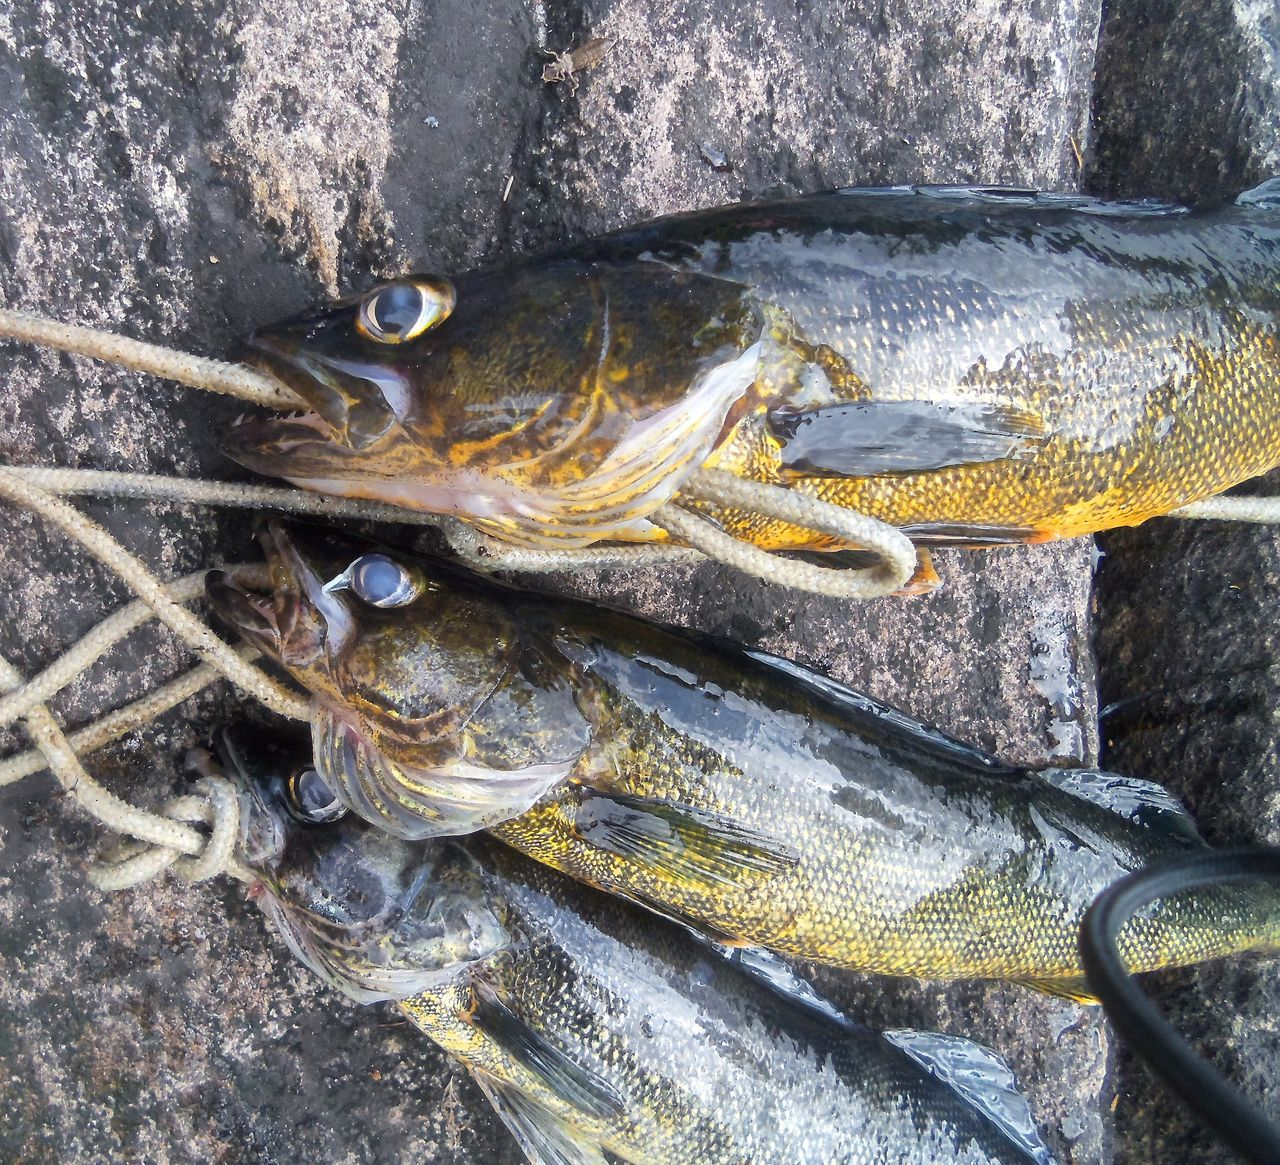 Camping Close-up Day Fish Fishing Freshwater Fish Freshwater Fishing Nature No People Outdoor Life Outdoors Rocks Rope Seafood Shore Stringer Three Fishes Walleye